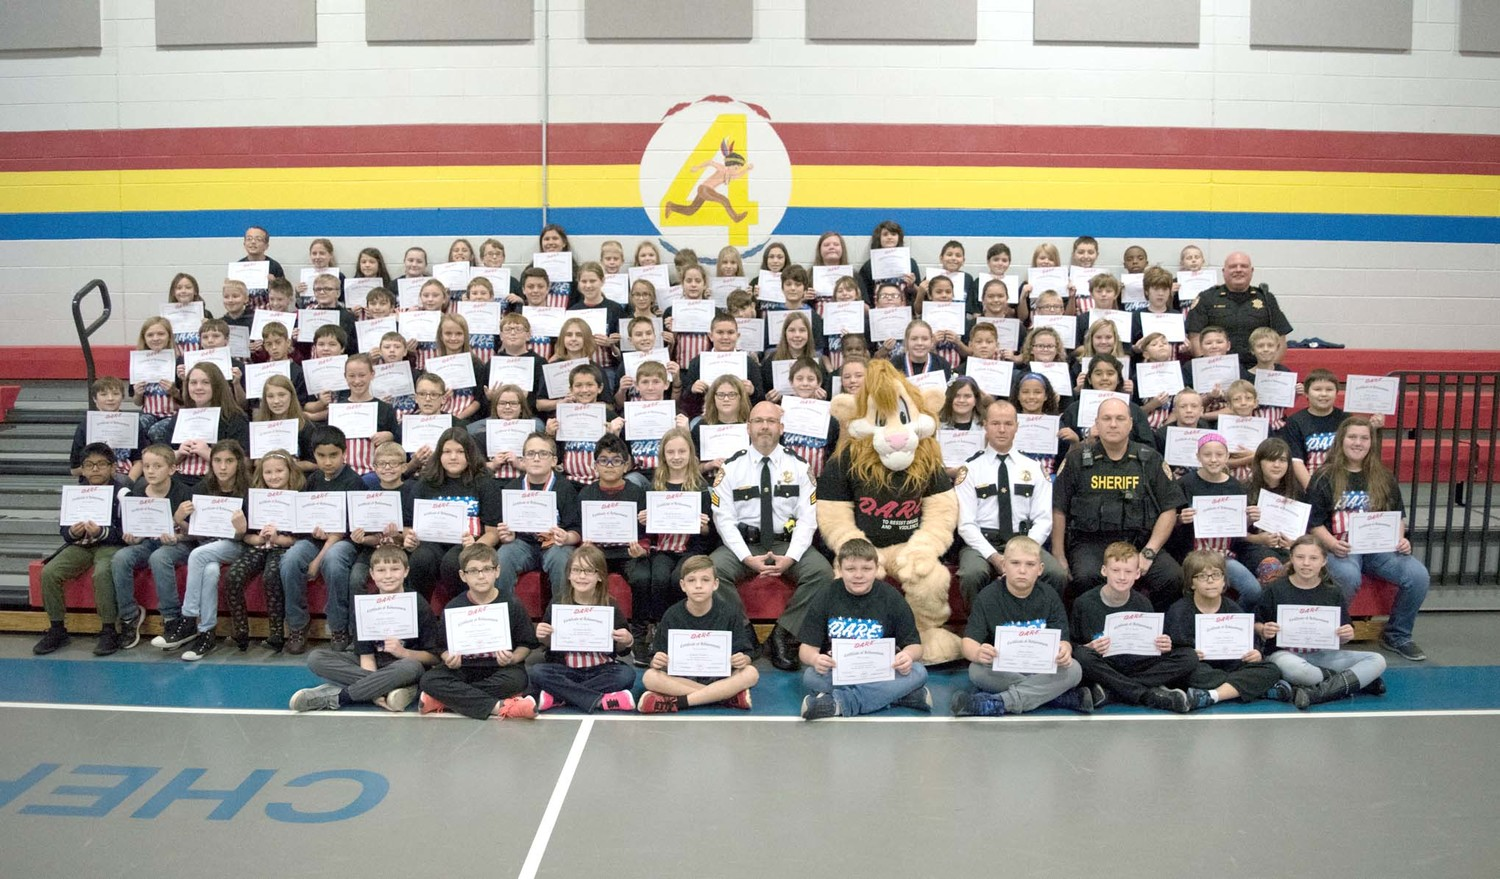 THE BRADLEY COUNTY SHERIFF'S OFFICE recently held a